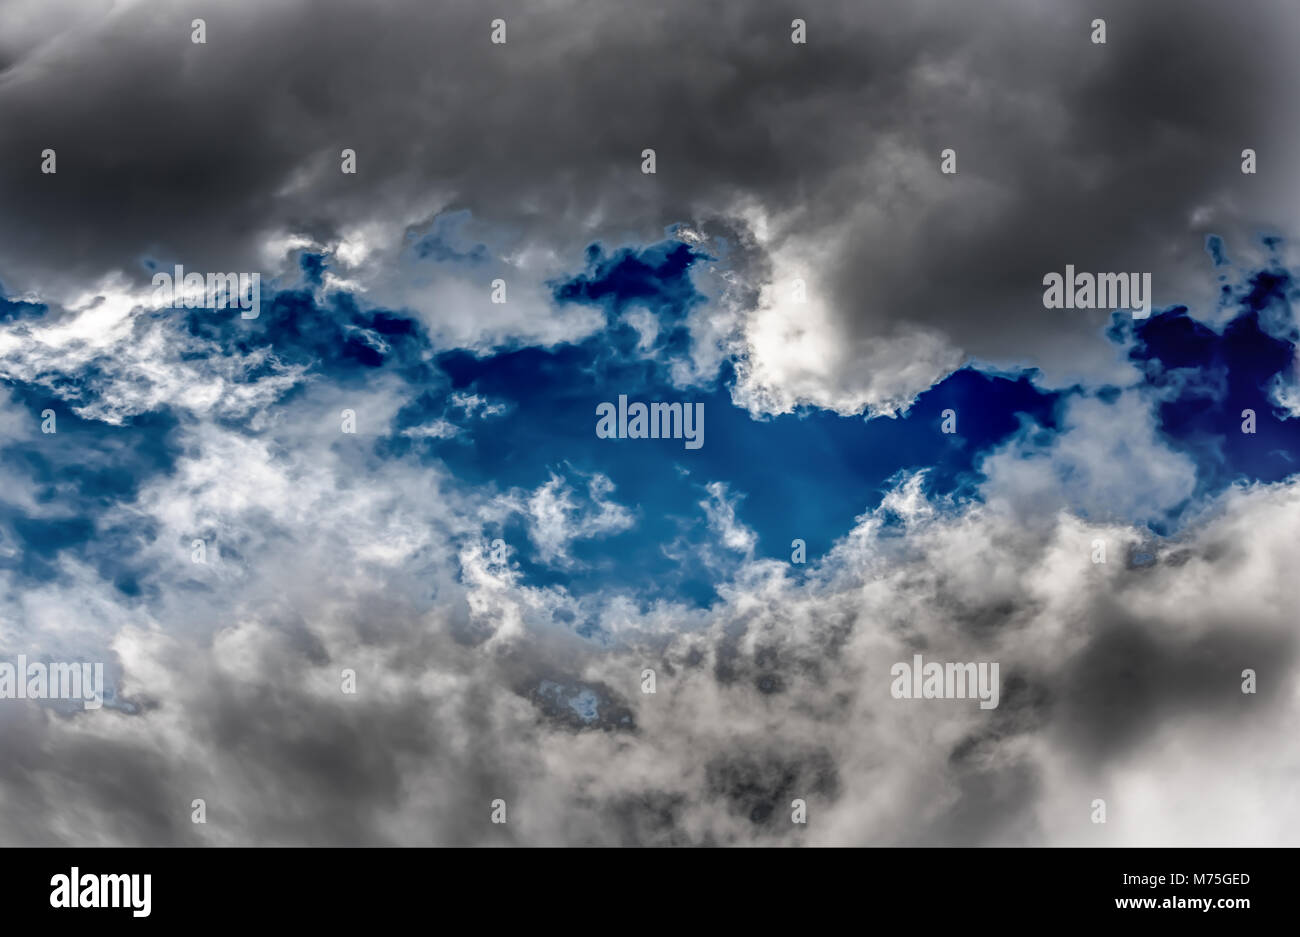 Cloudy blue sky abstract background - Stock Image